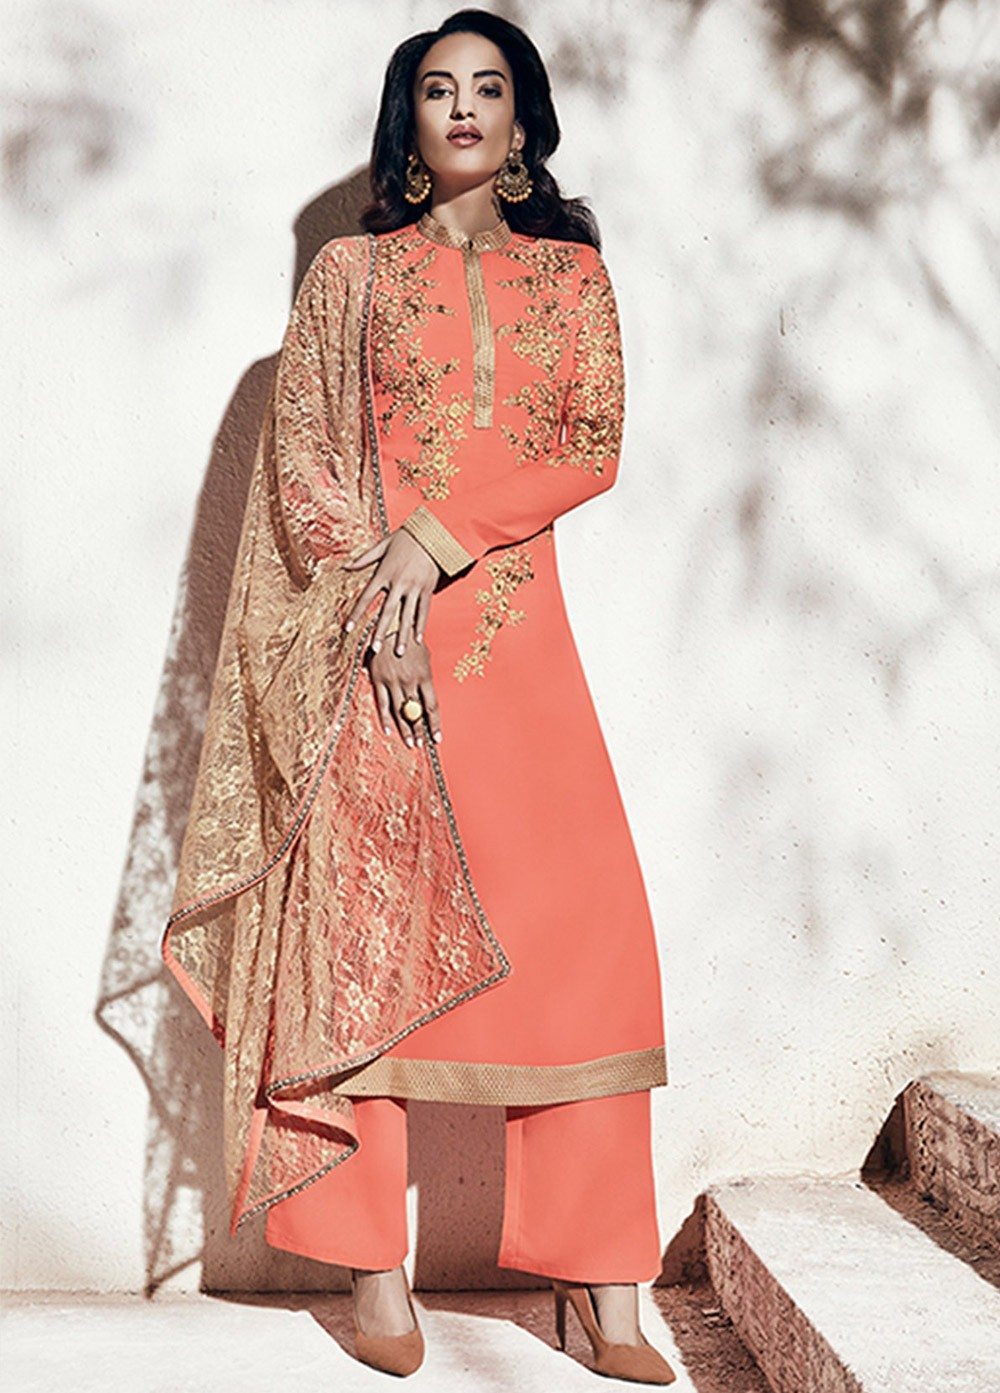 d86f720b08 Buy Peach and gold color georgette party wear straight cut salwar ...